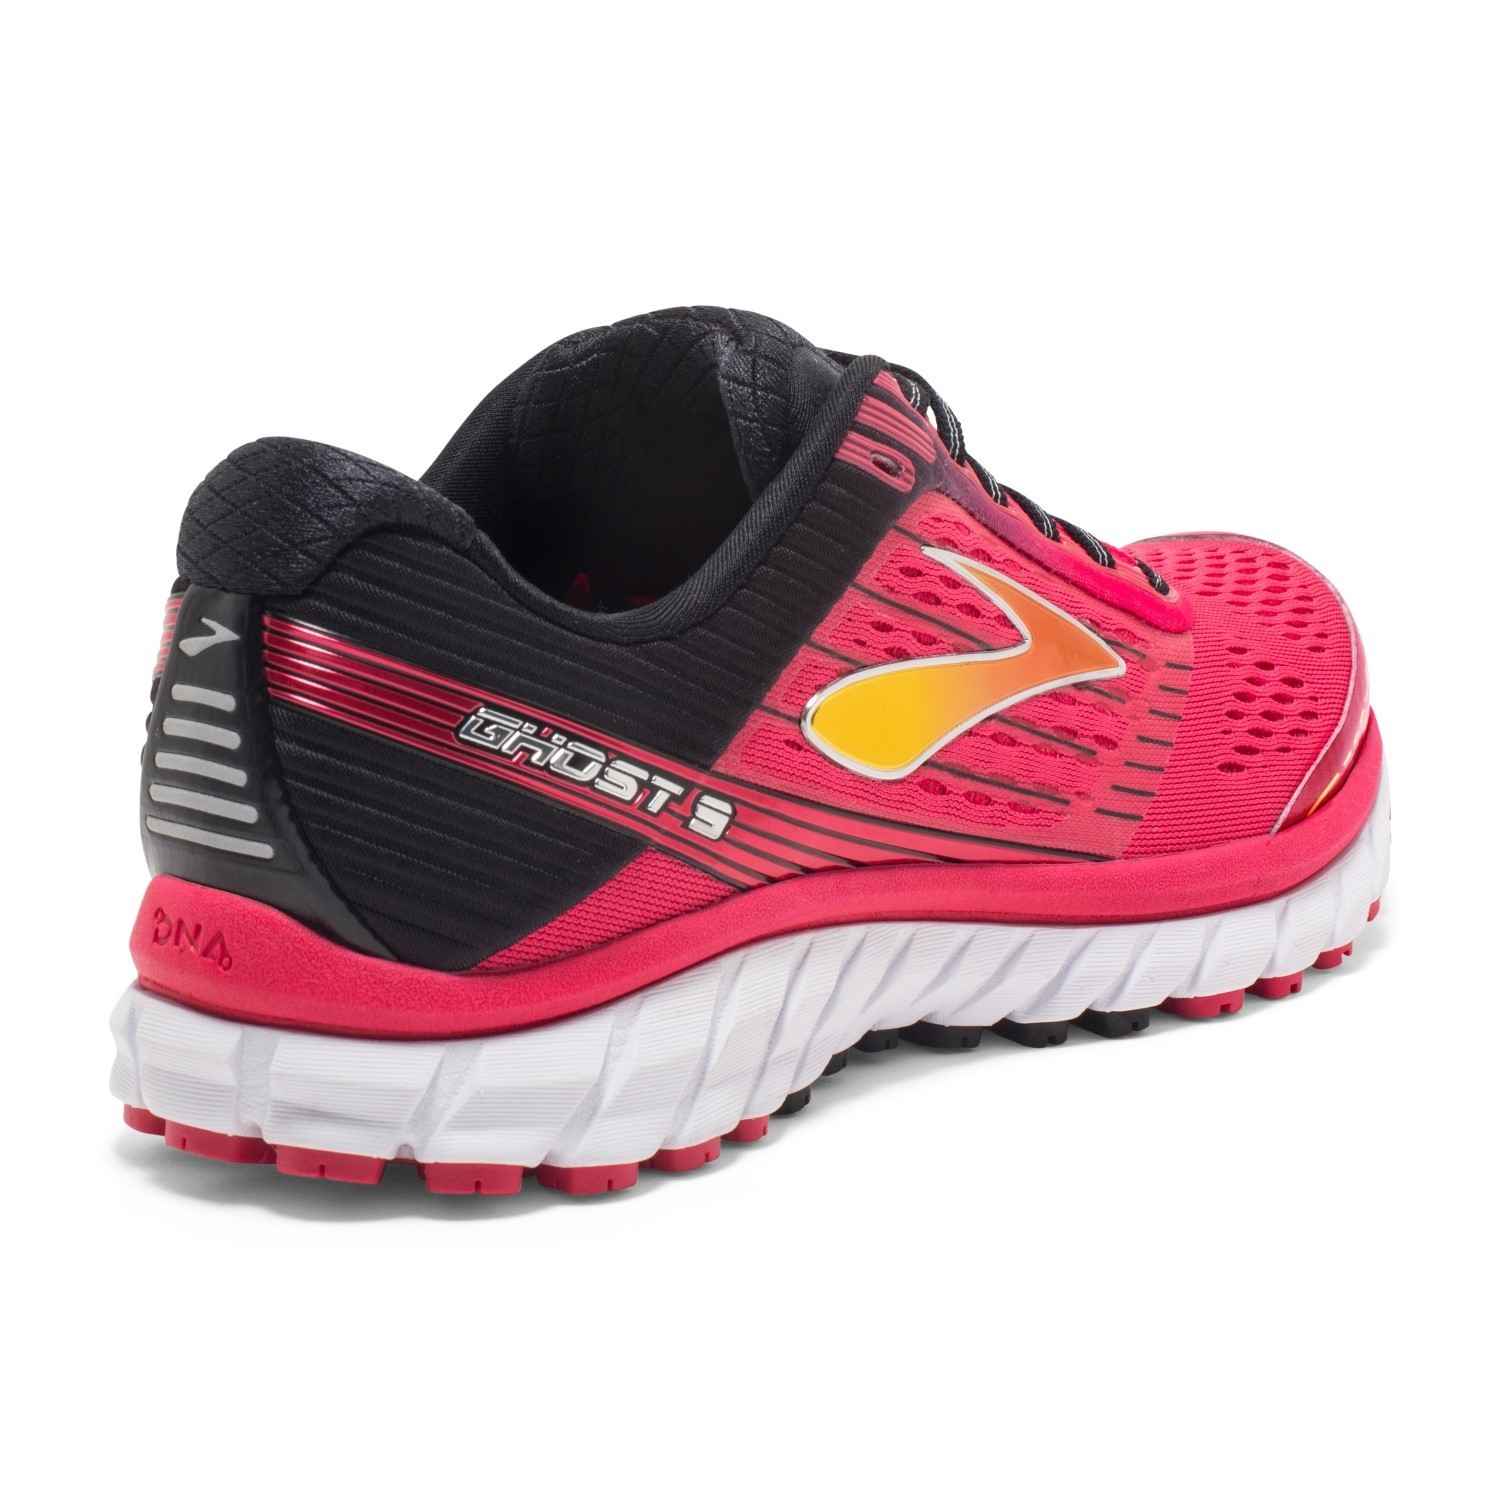 94dfb1eadccd1 Brooks Ghost 9 - Womens Running Shoes - Azalea Black Cyber Yellow ...